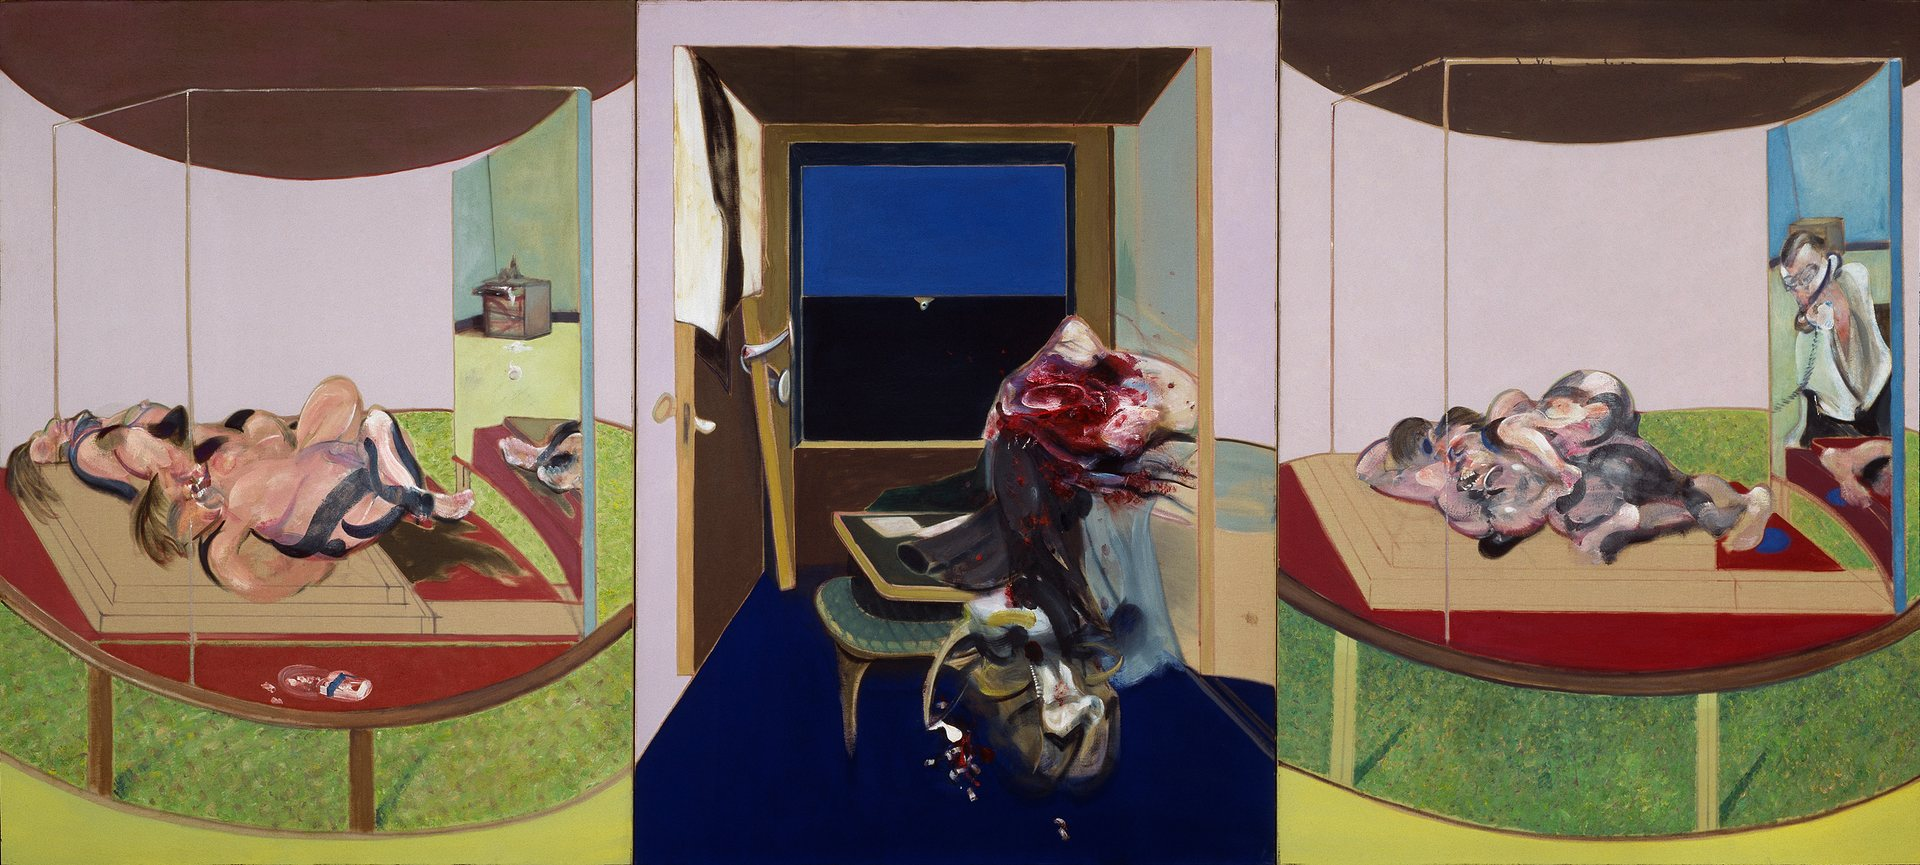 'An opera of gaping mouths and writhing figures': Triptych, 1967 by Francis Bacon. Photograph: © The Estate of Francis Bacon. All Rights Reserved. DACS 2016